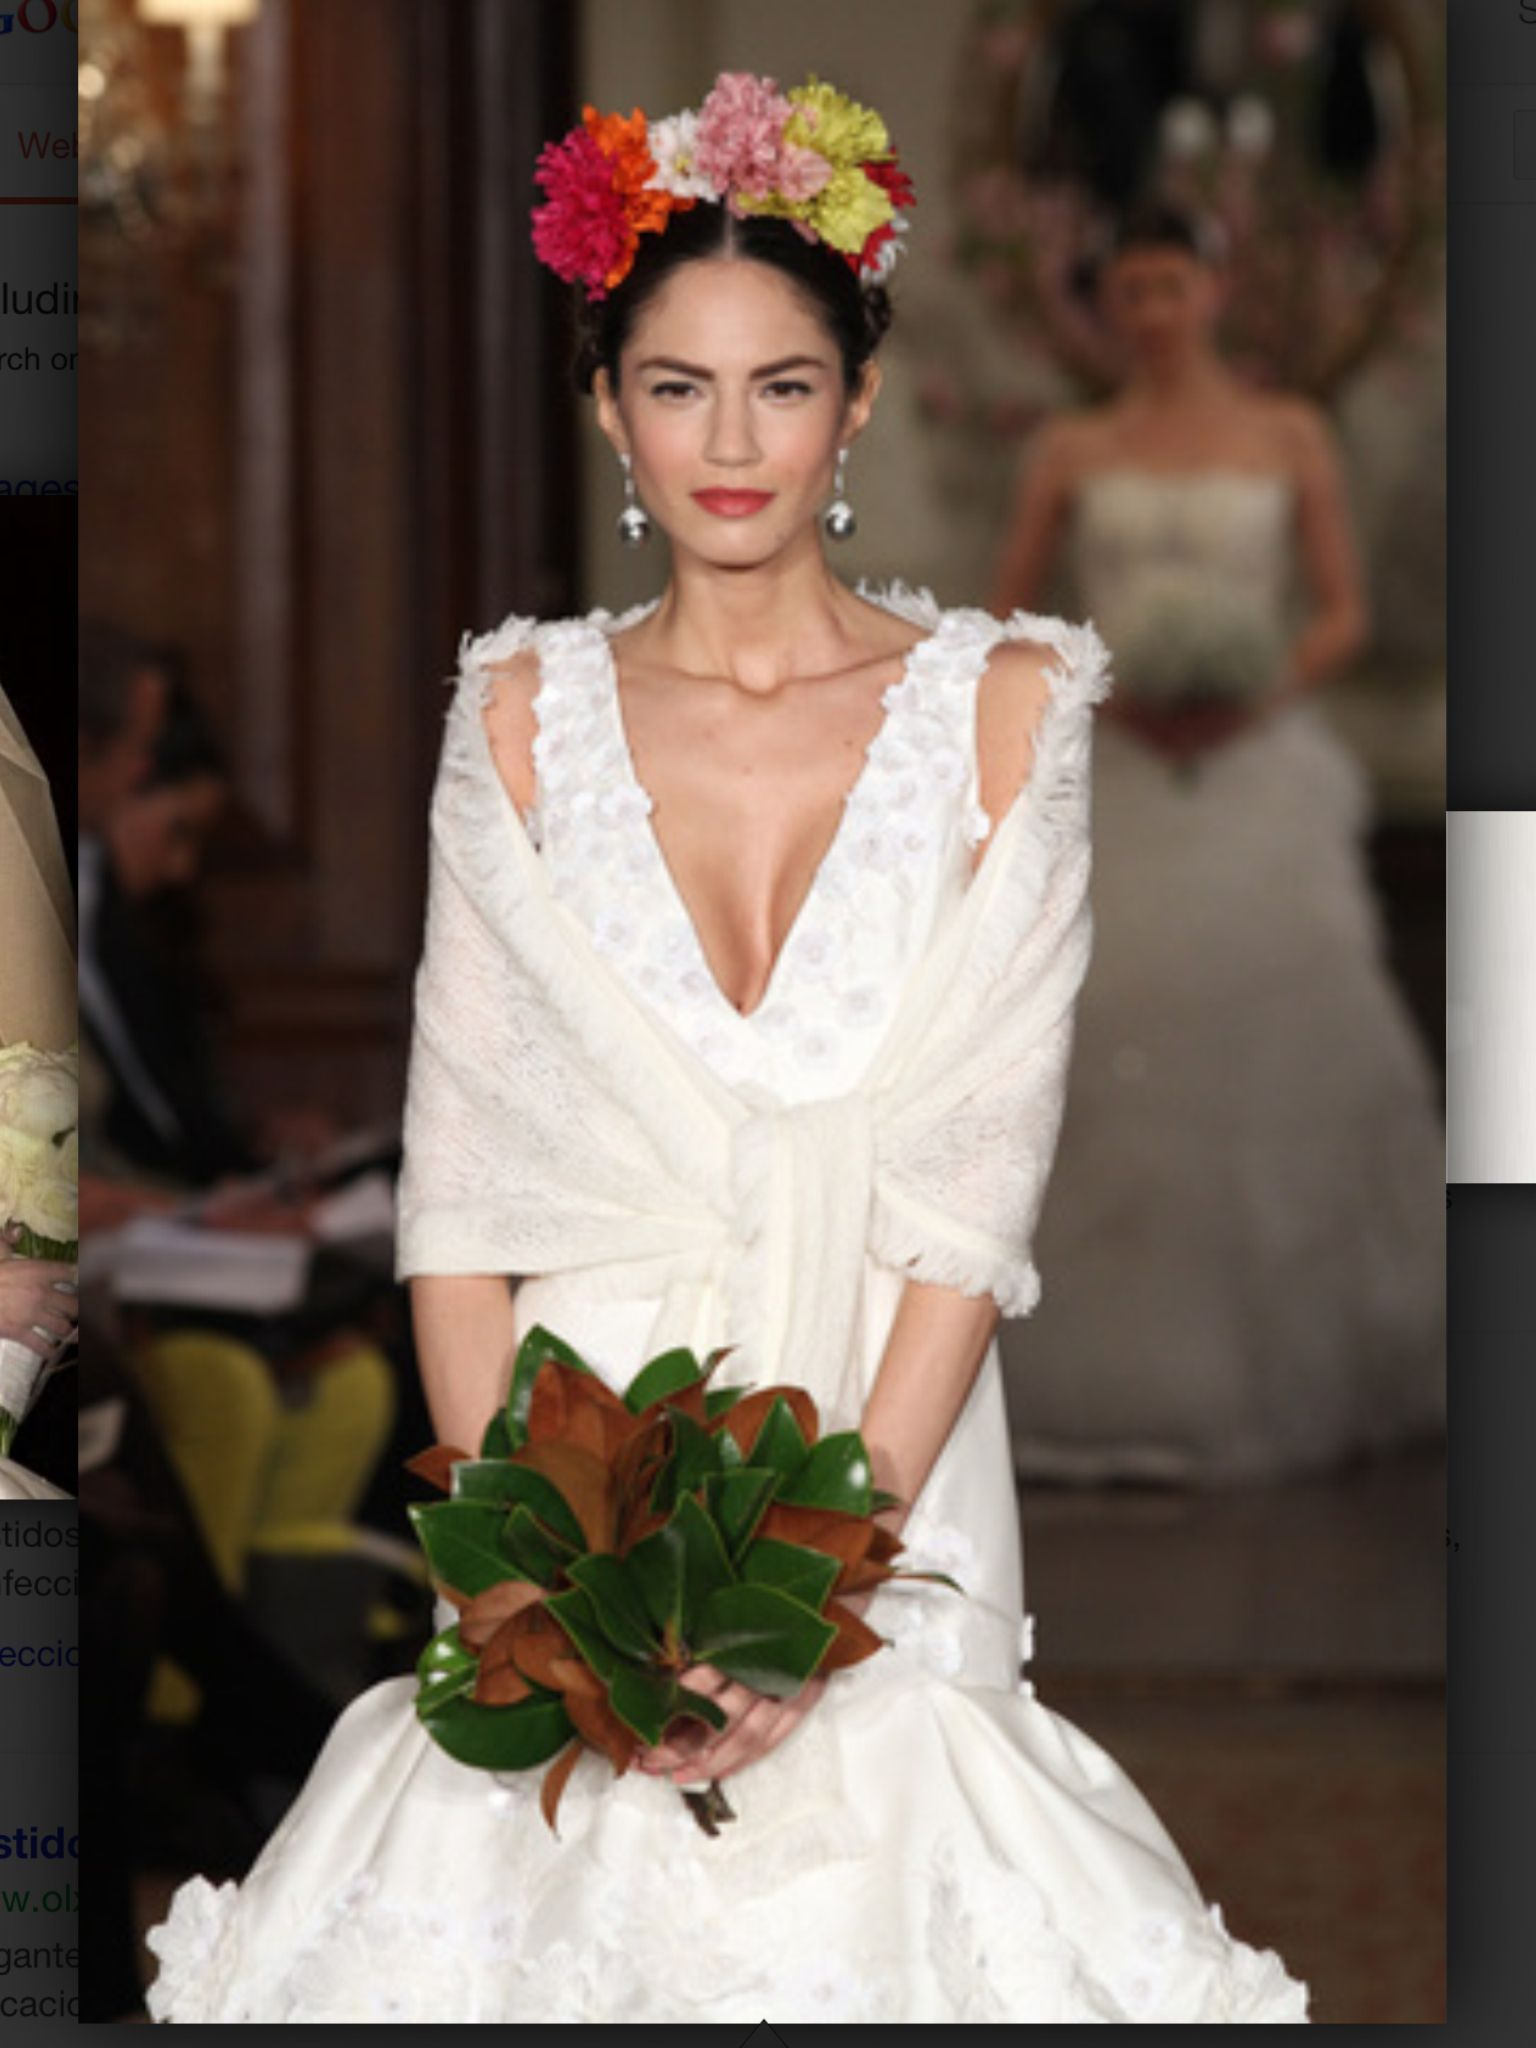 Mexican style wedding dress inspired by frida kahlo for Mexican style wedding dress